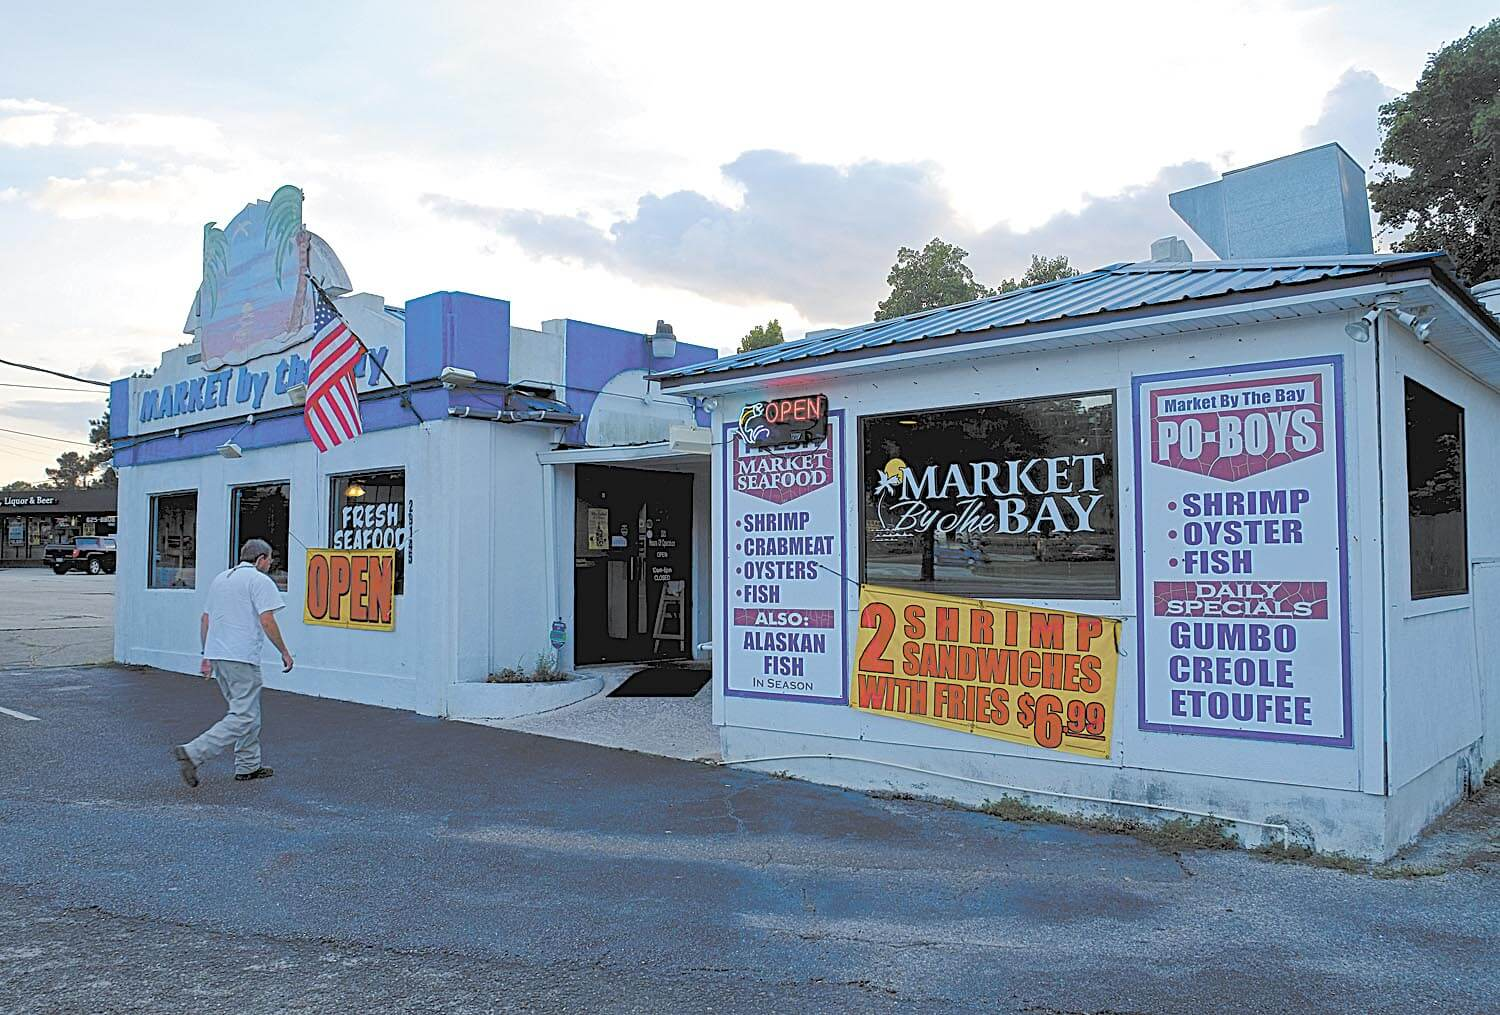 Could Market by the Bay have the area's best gumbo?